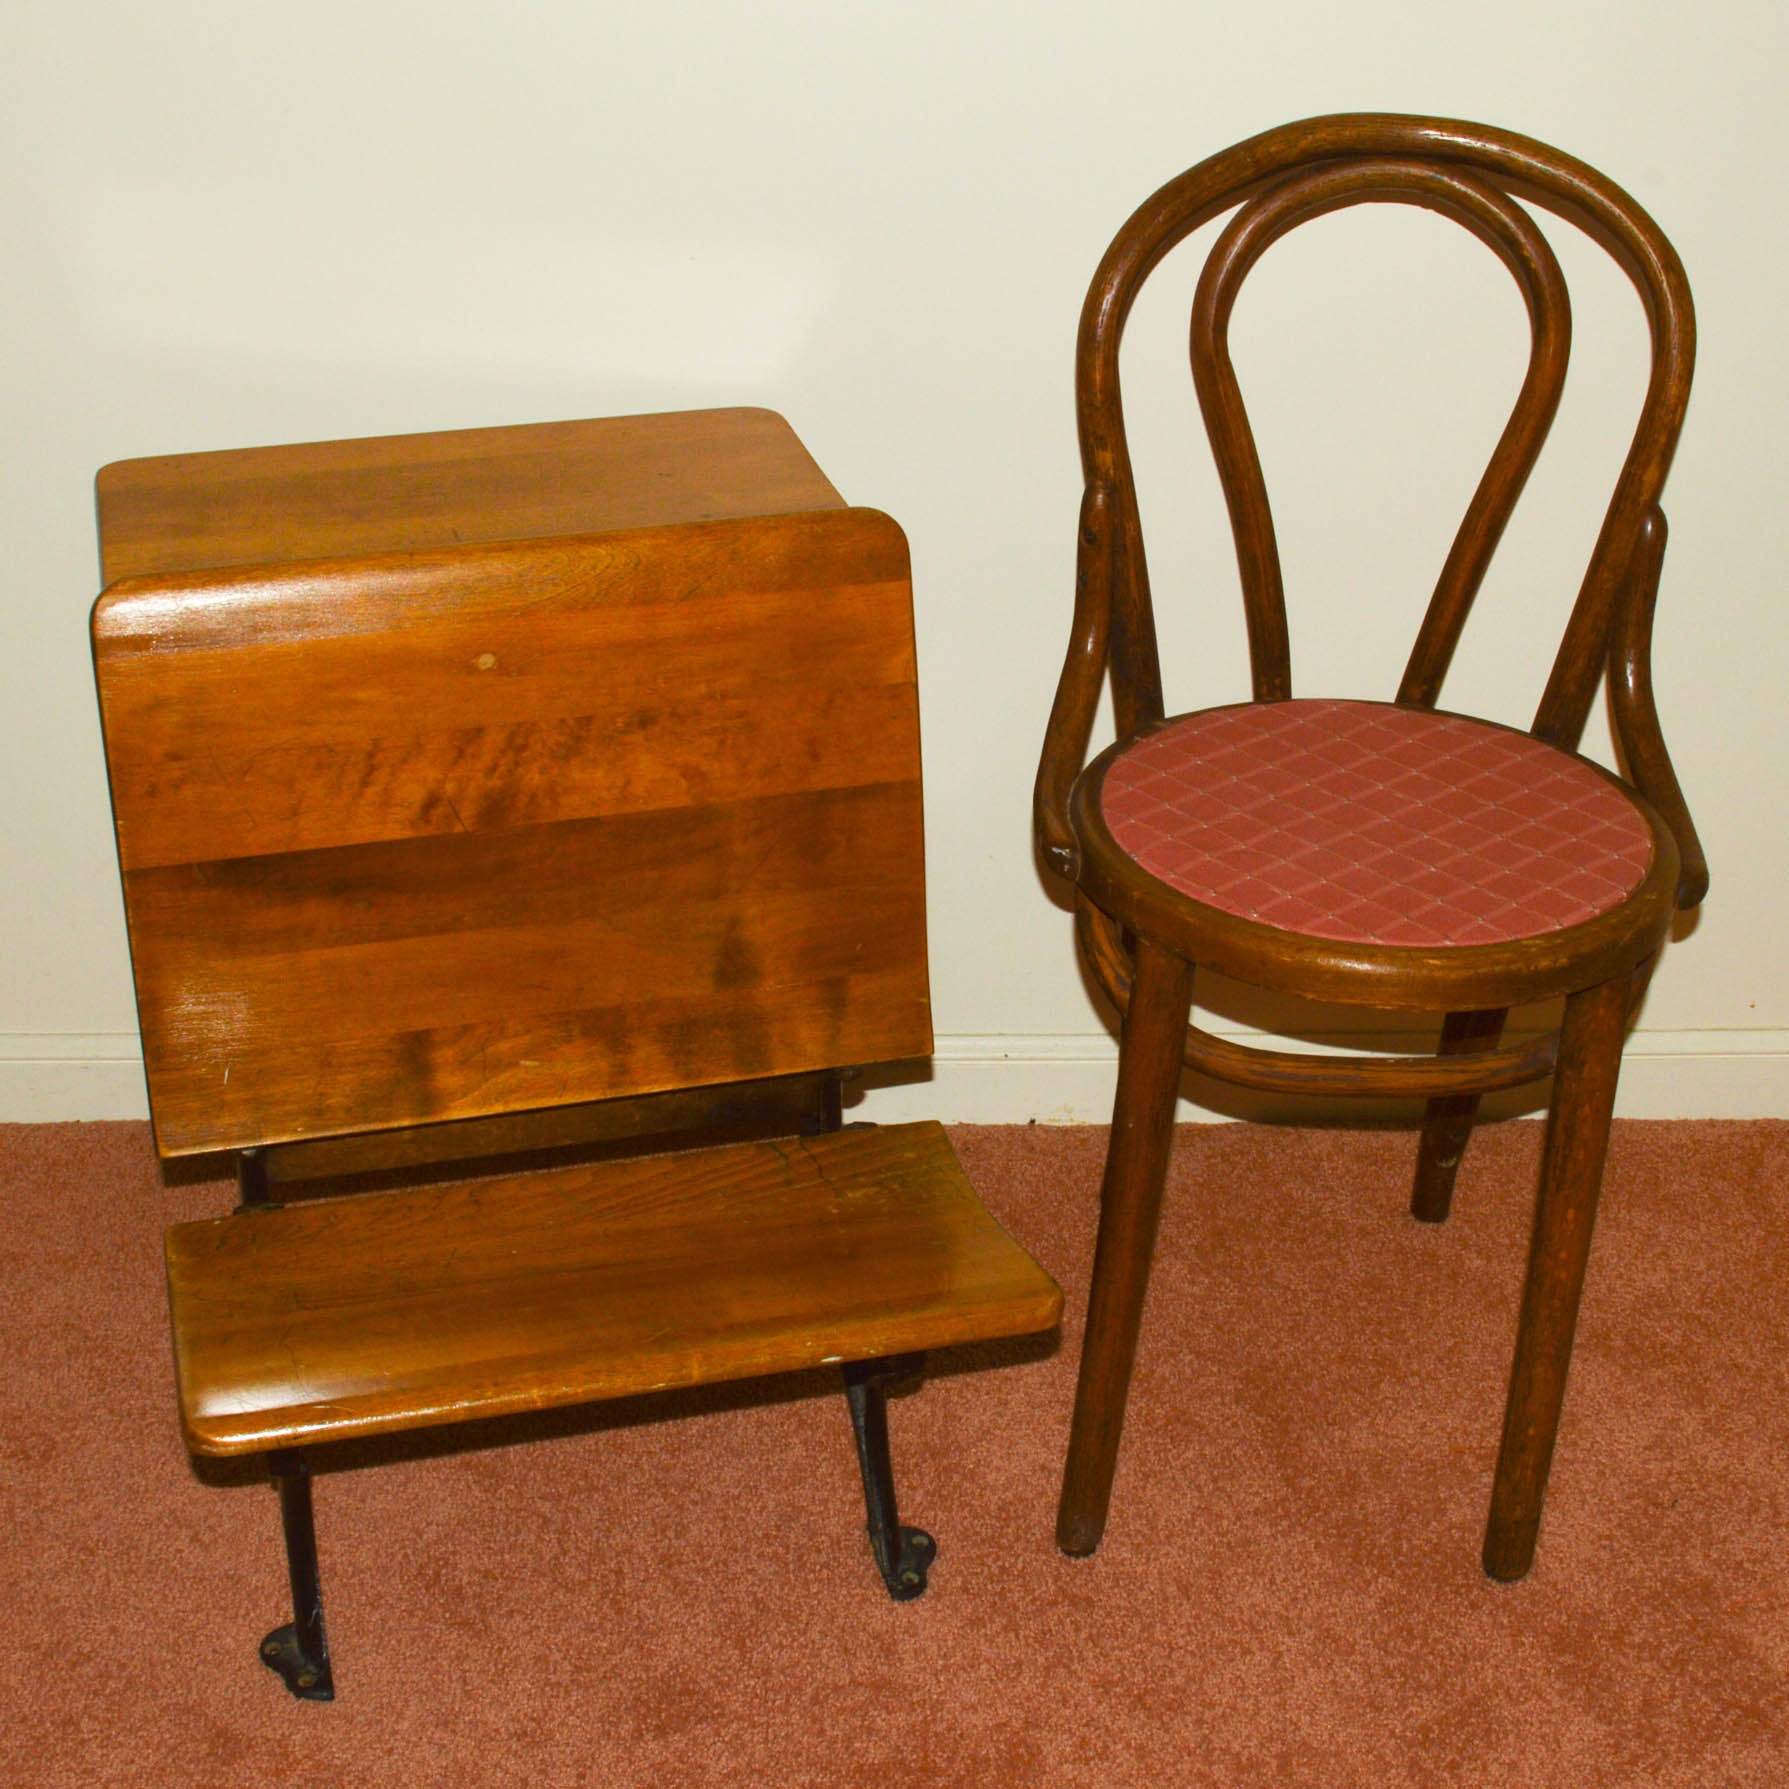 Vintage Student's Desk and Bentwood Chair